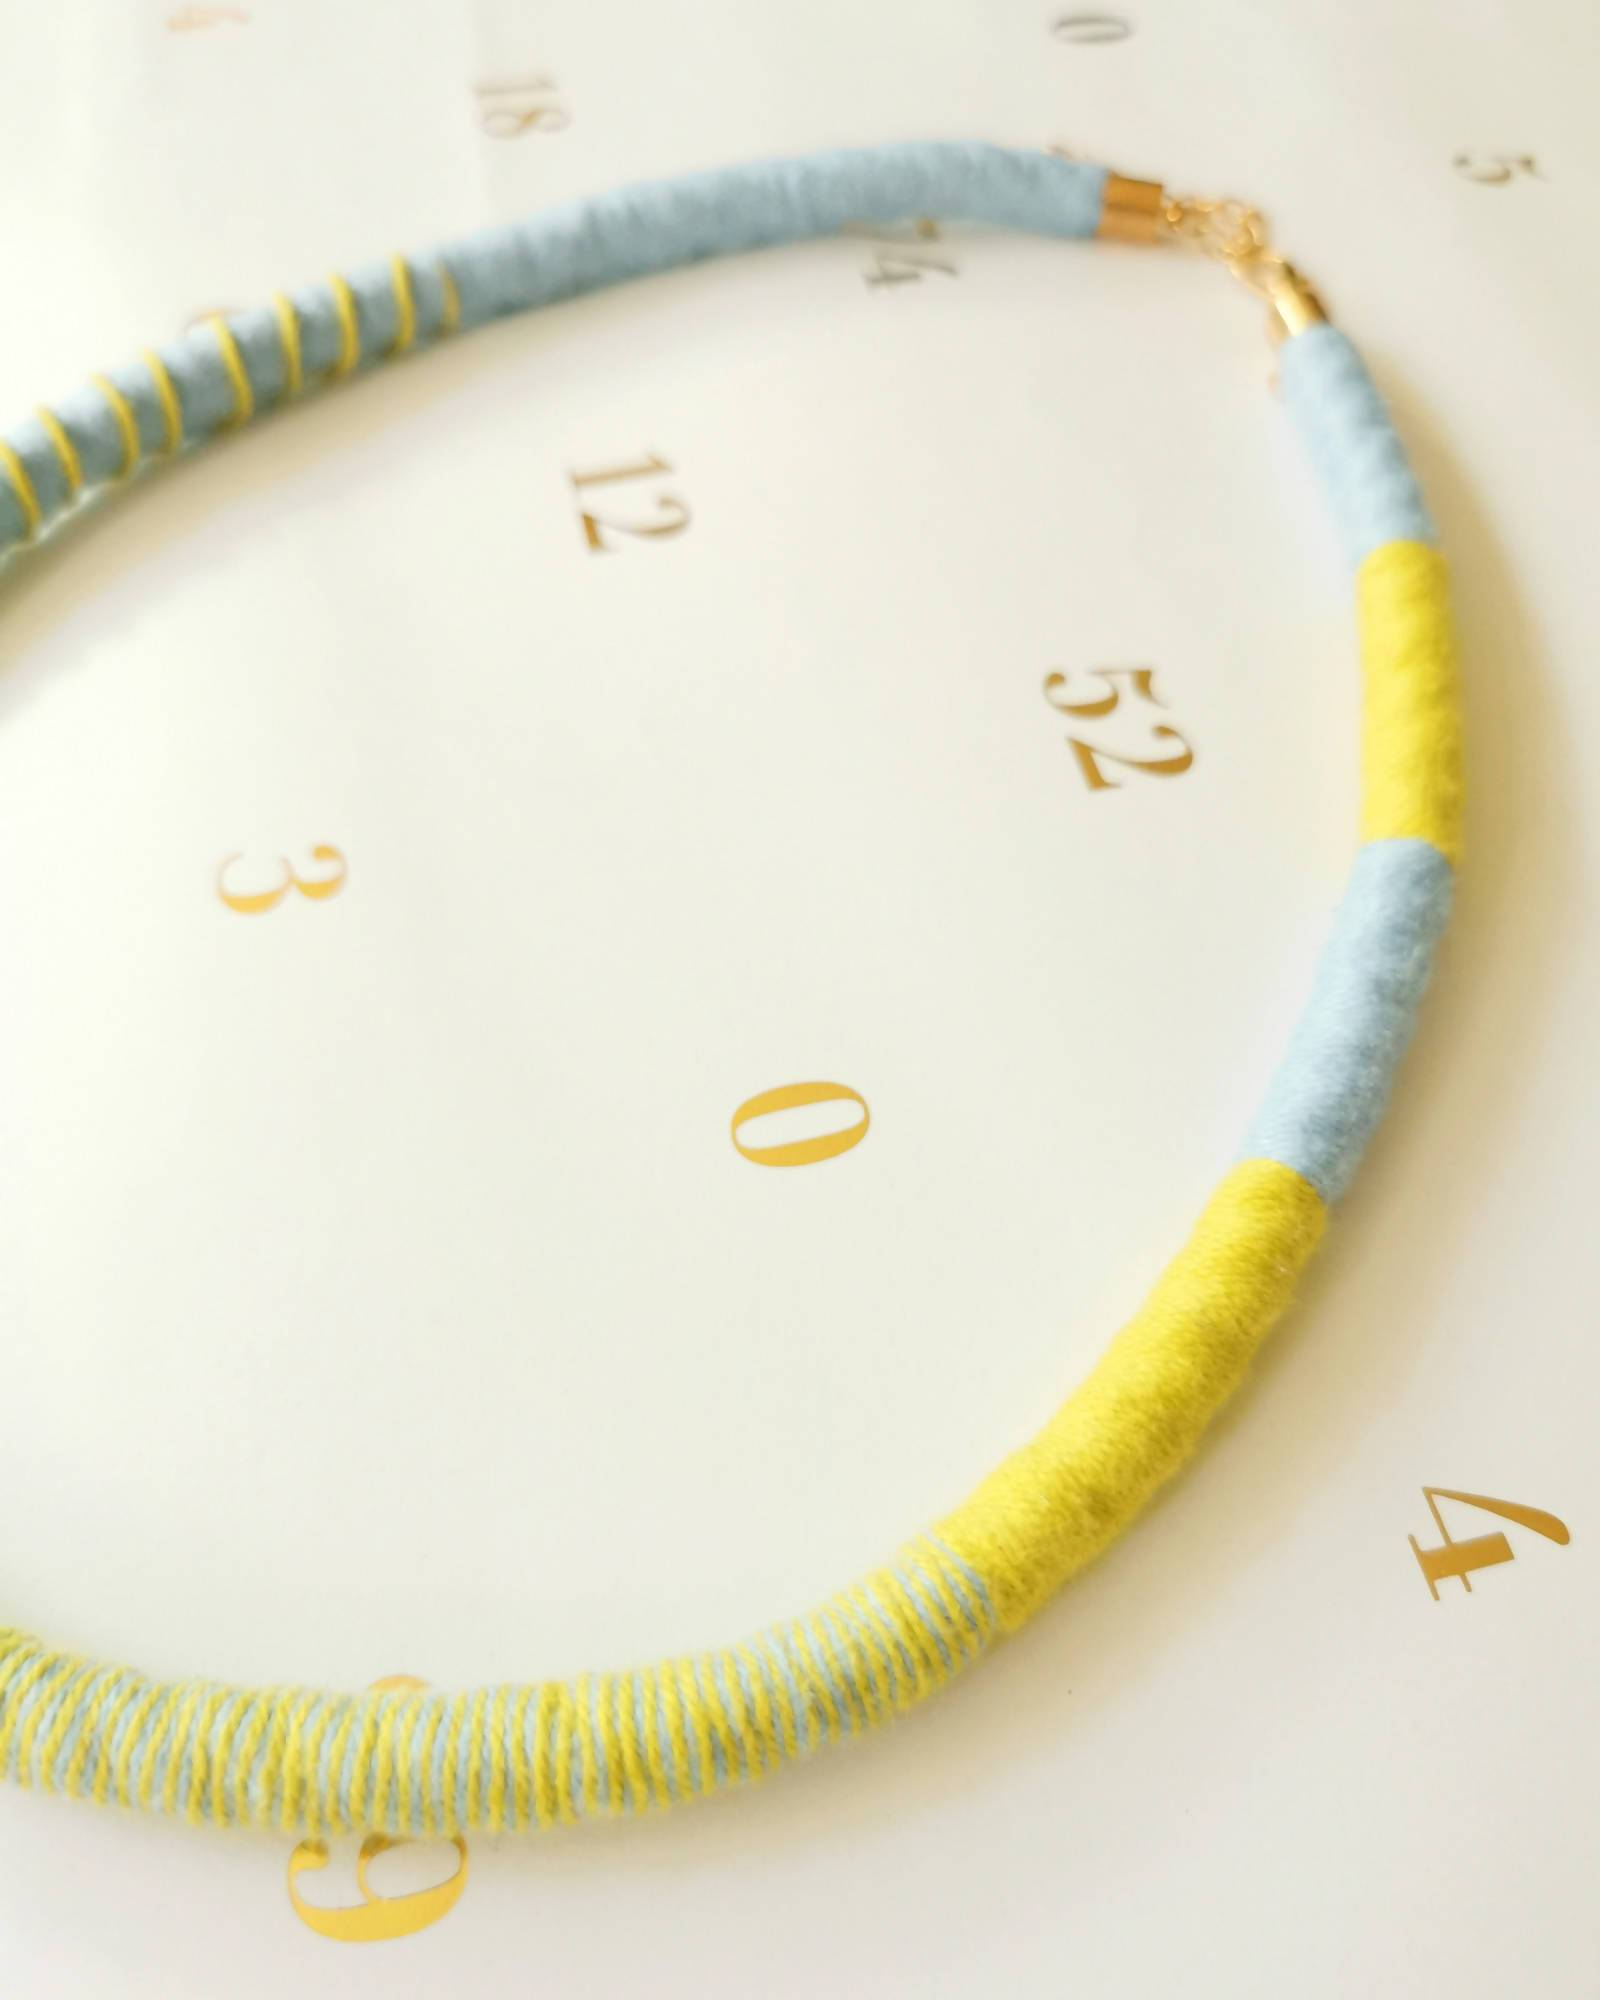 Tribeca Multi-wear Rope Necklace/Bracelet - Baby Blue/Chartreuse - Necklaces - Playtime Rebs Studio - Naiise